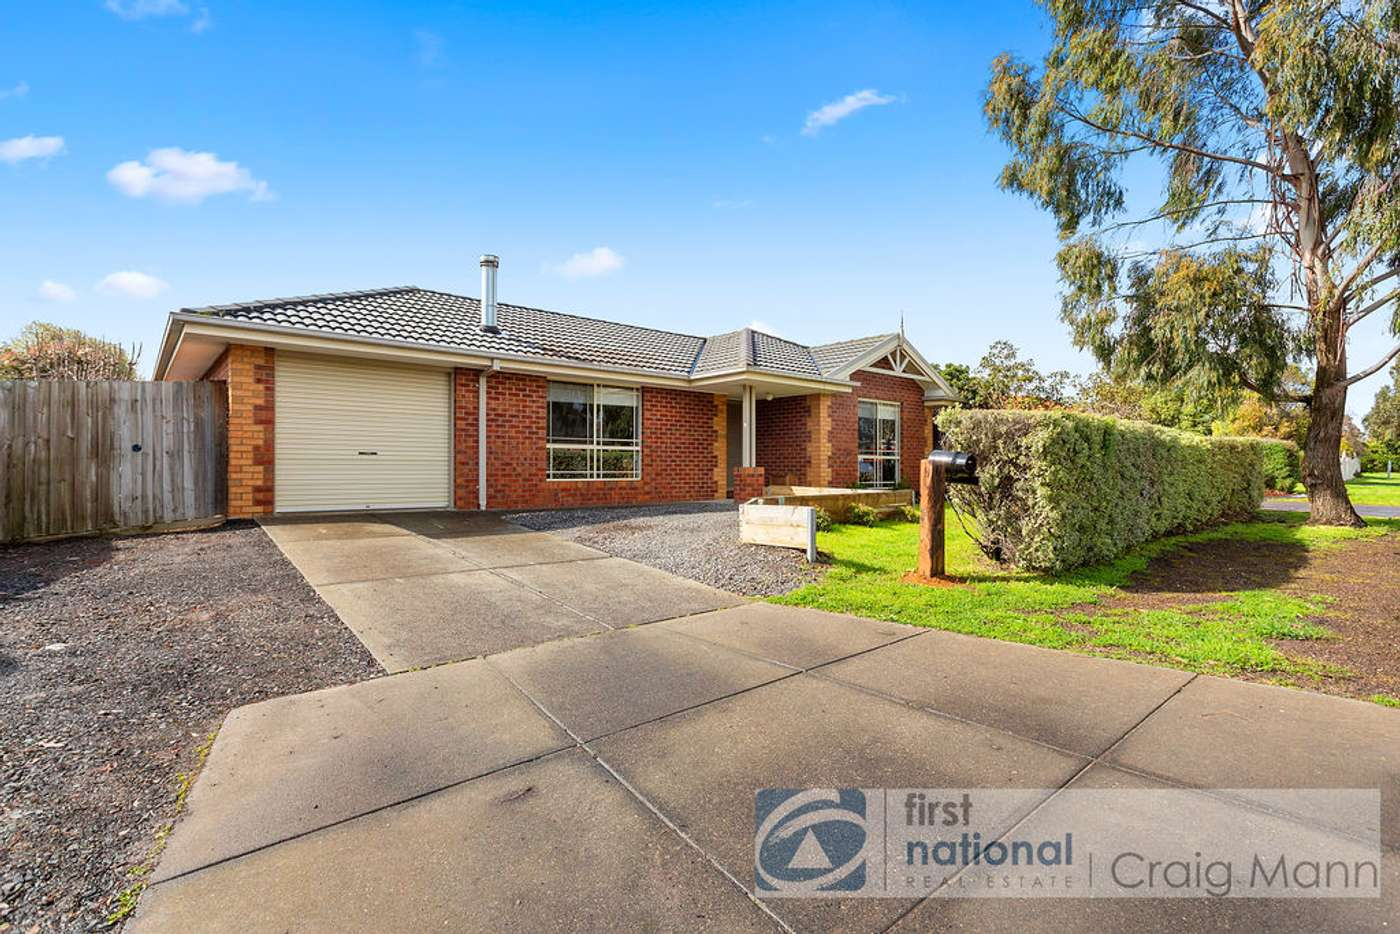 Main view of Homely house listing, 17 Lantons Way, Hastings VIC 3915